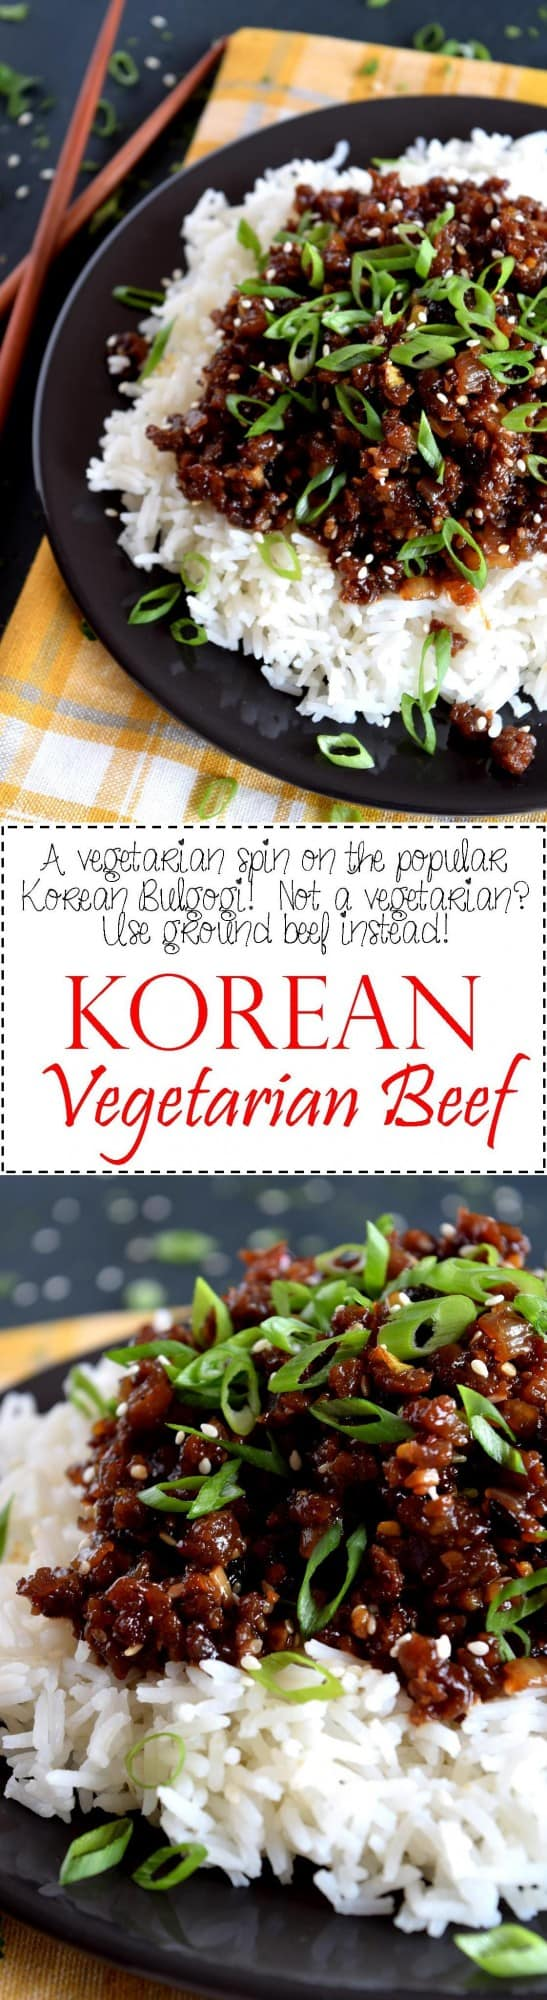 Korean vegetarian beef lord byrons kitchen like what you see share it with your friends forumfinder Gallery